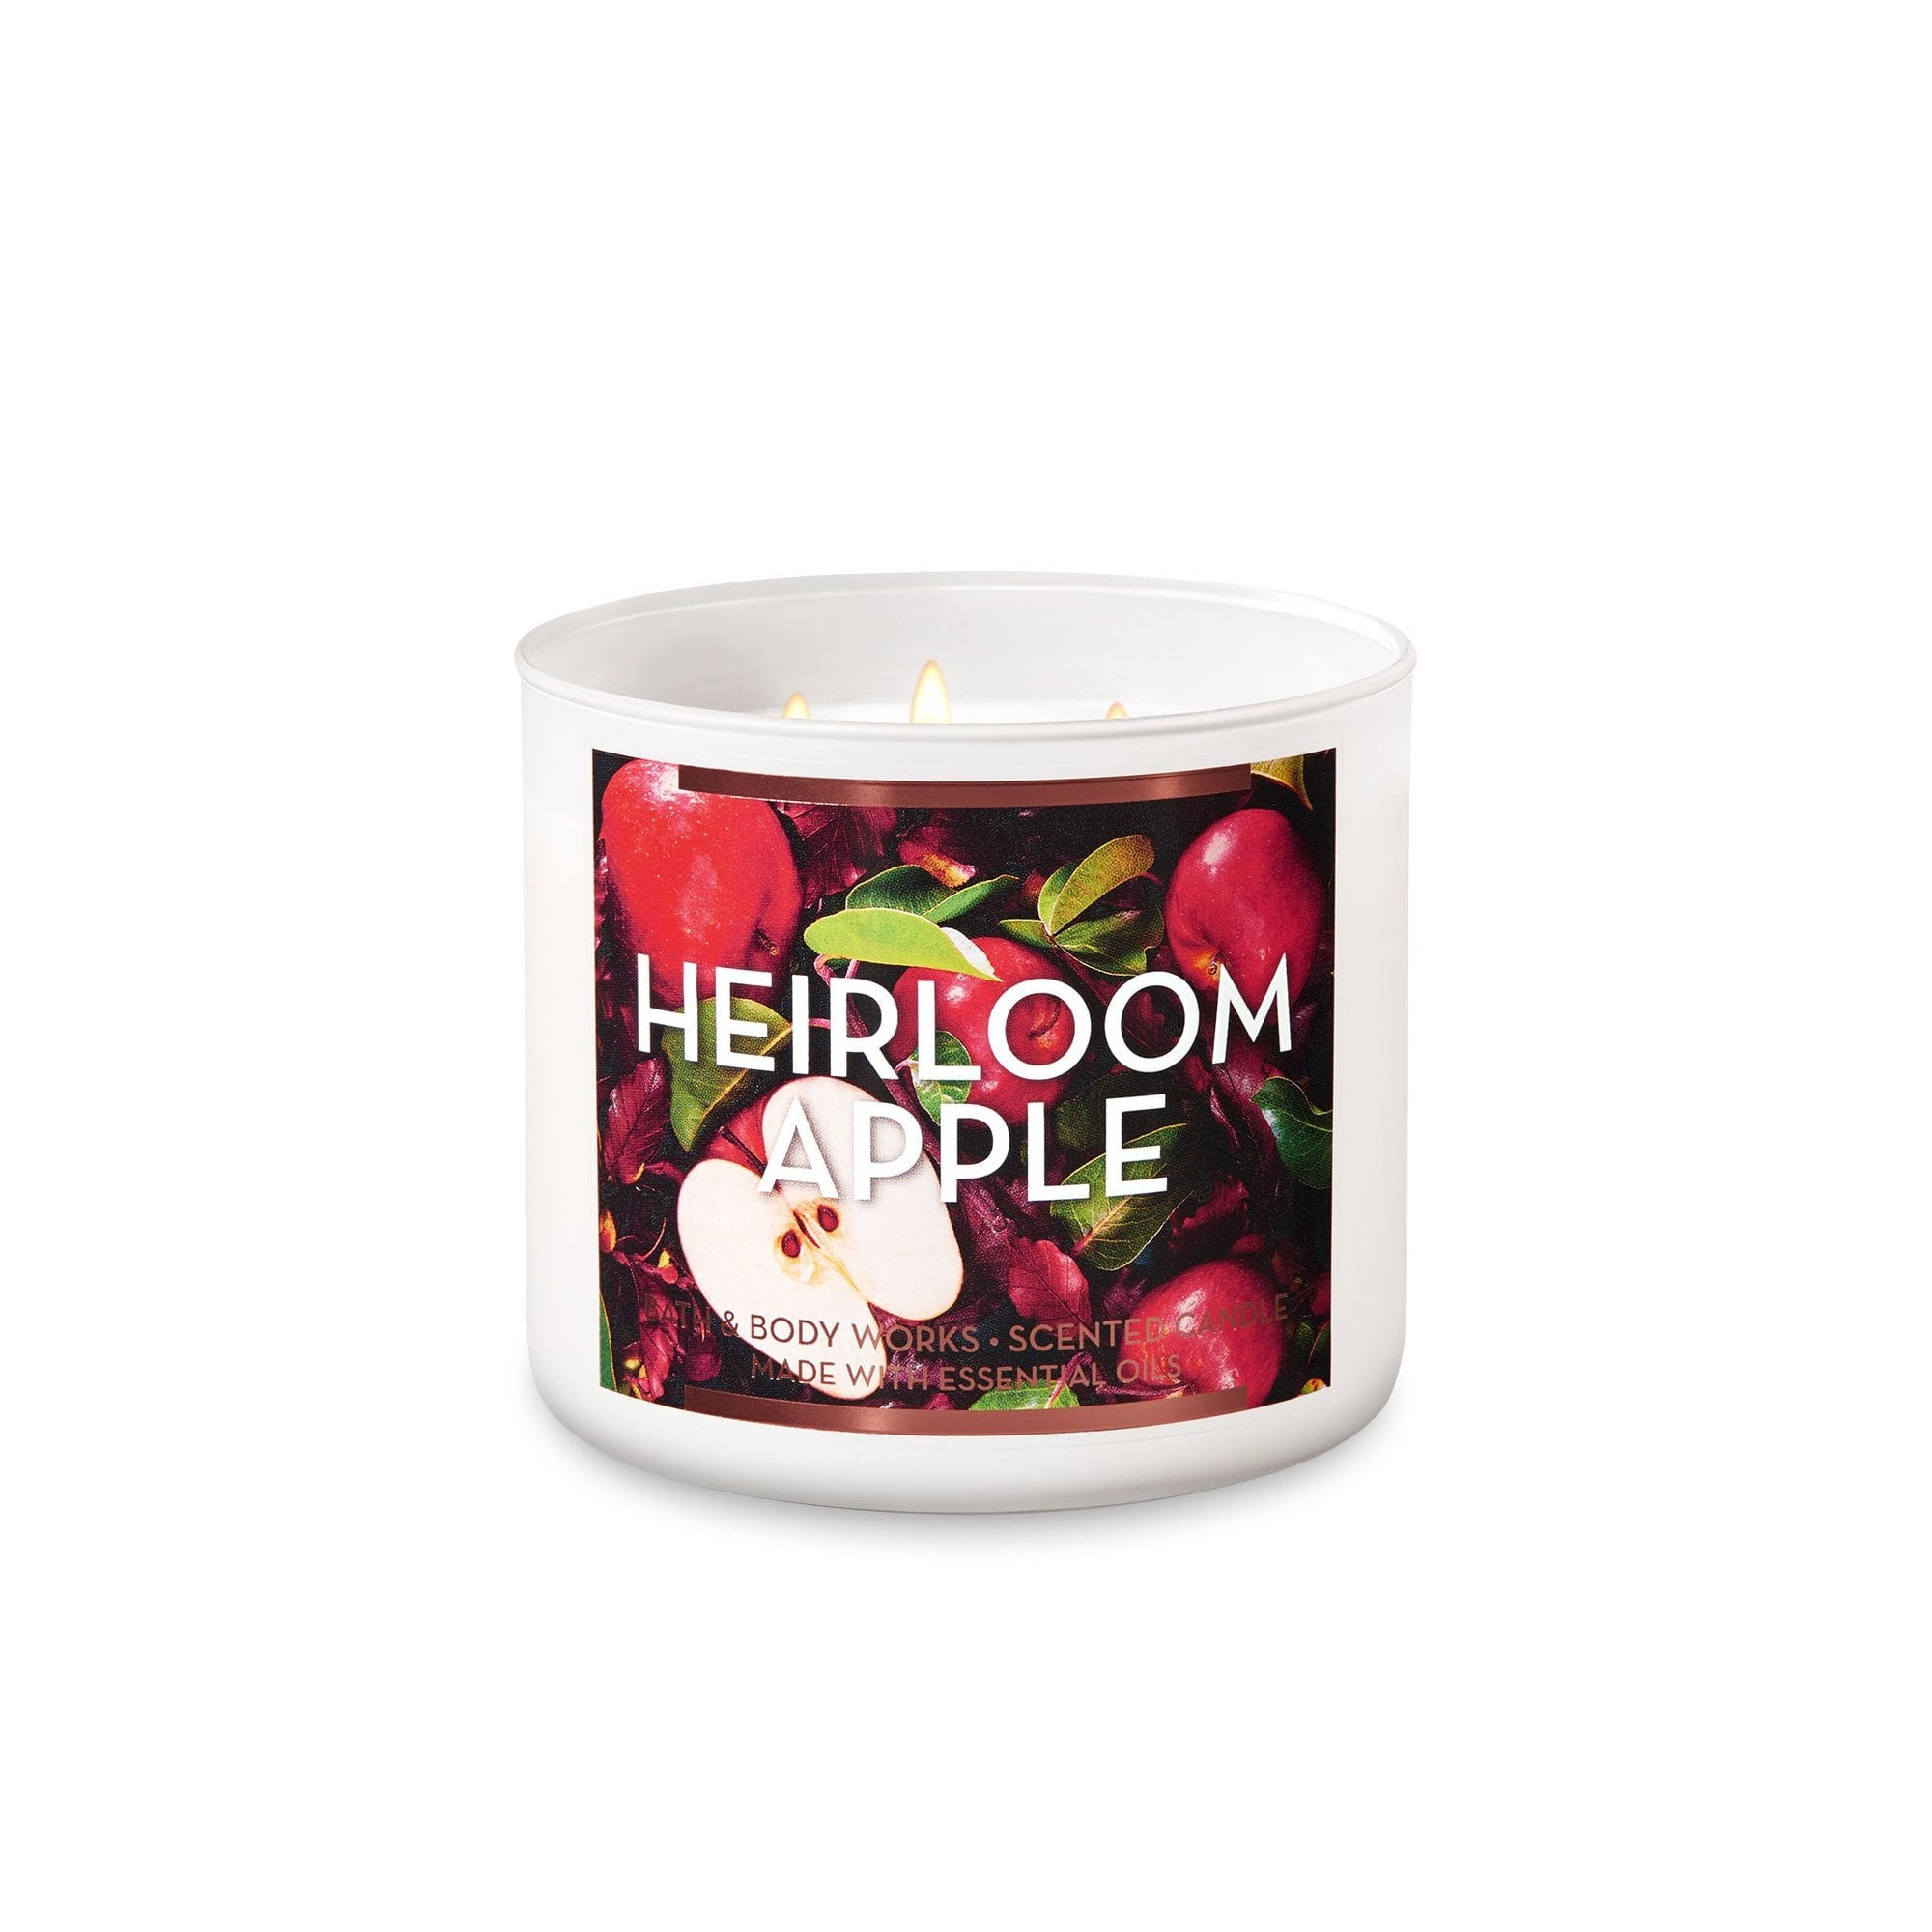 Bath & Body Works White Barn Heirloom Apple 3 Wick Scented Candle